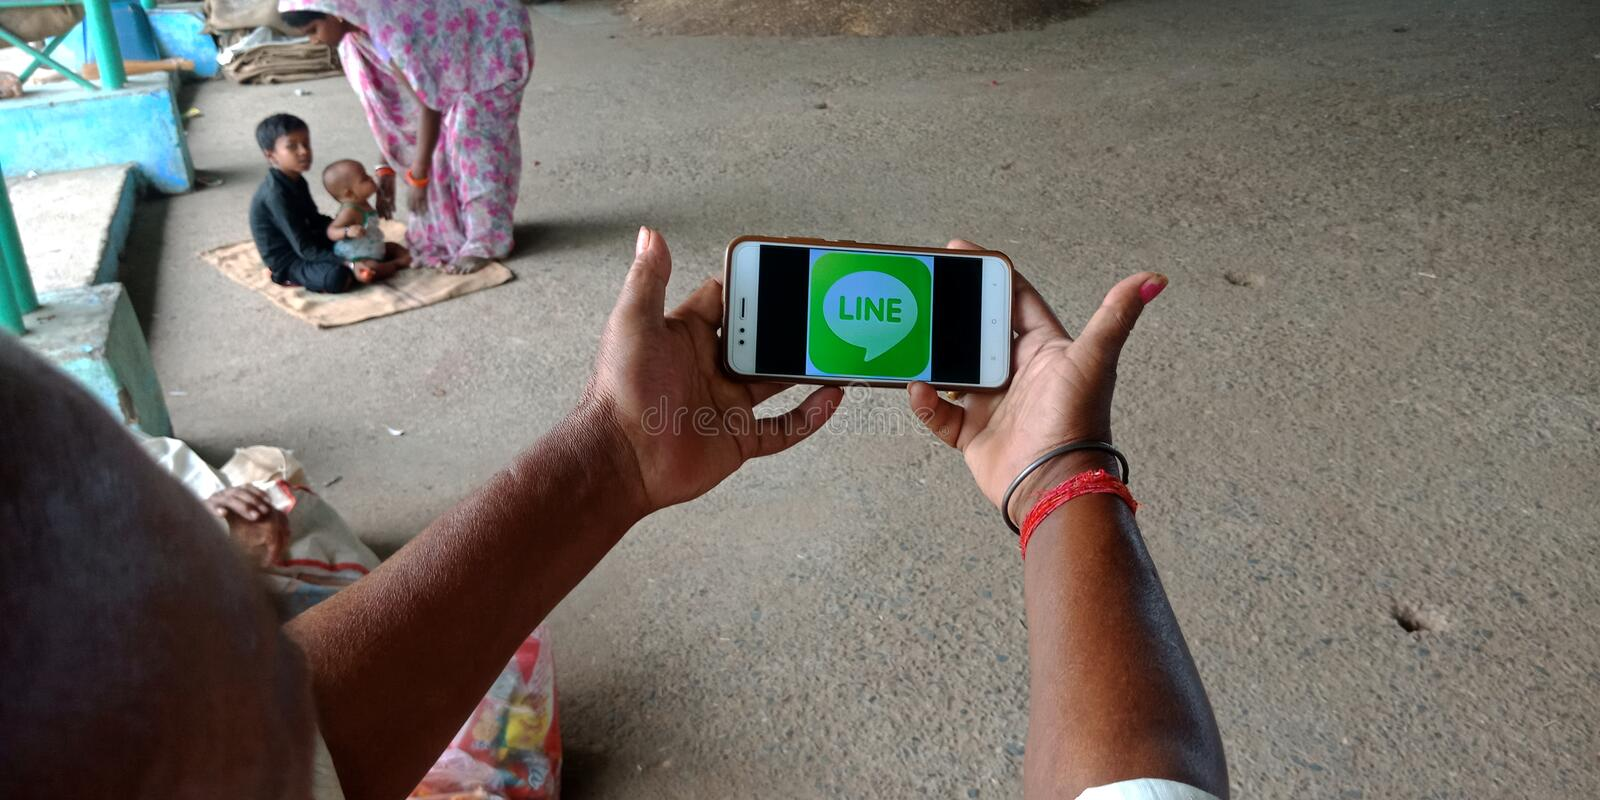 line messenger app logo displaying on mobile phone screen at agriculture produce market stock photos